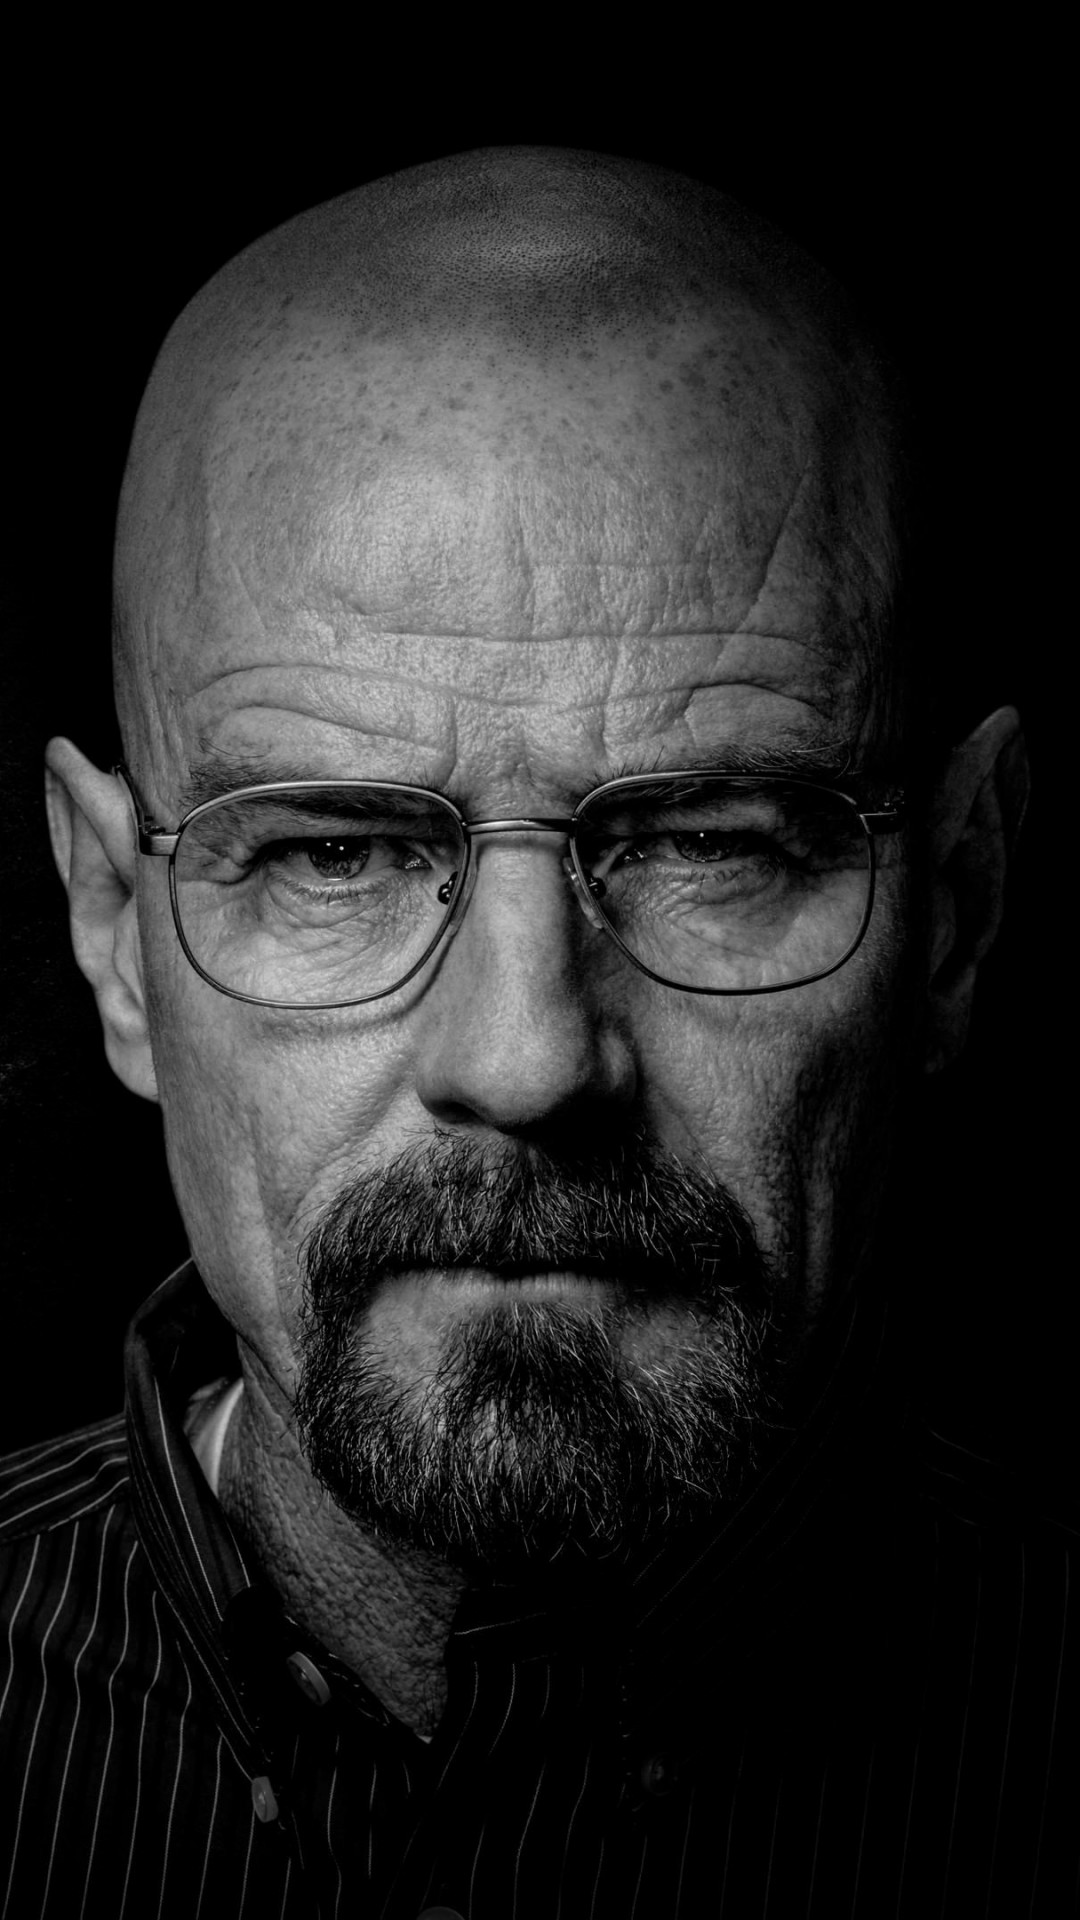 Breaking Bad - Walter White - Black & White Wallpaper for SONY Xperia Z2